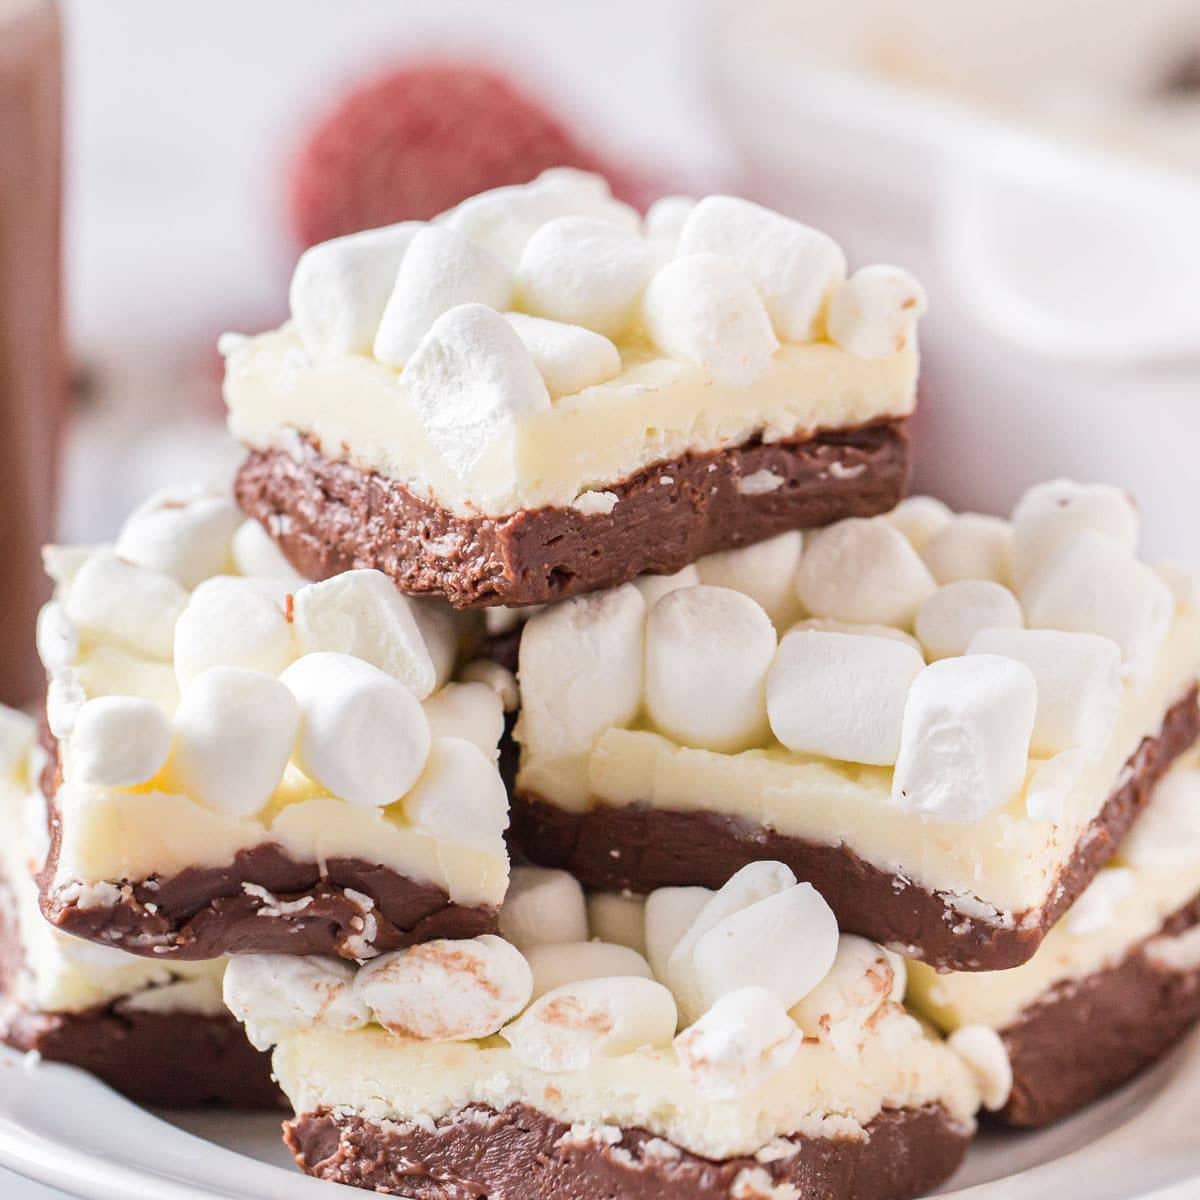 A pile of hot chocolate fudge topped with mini marshmallows.